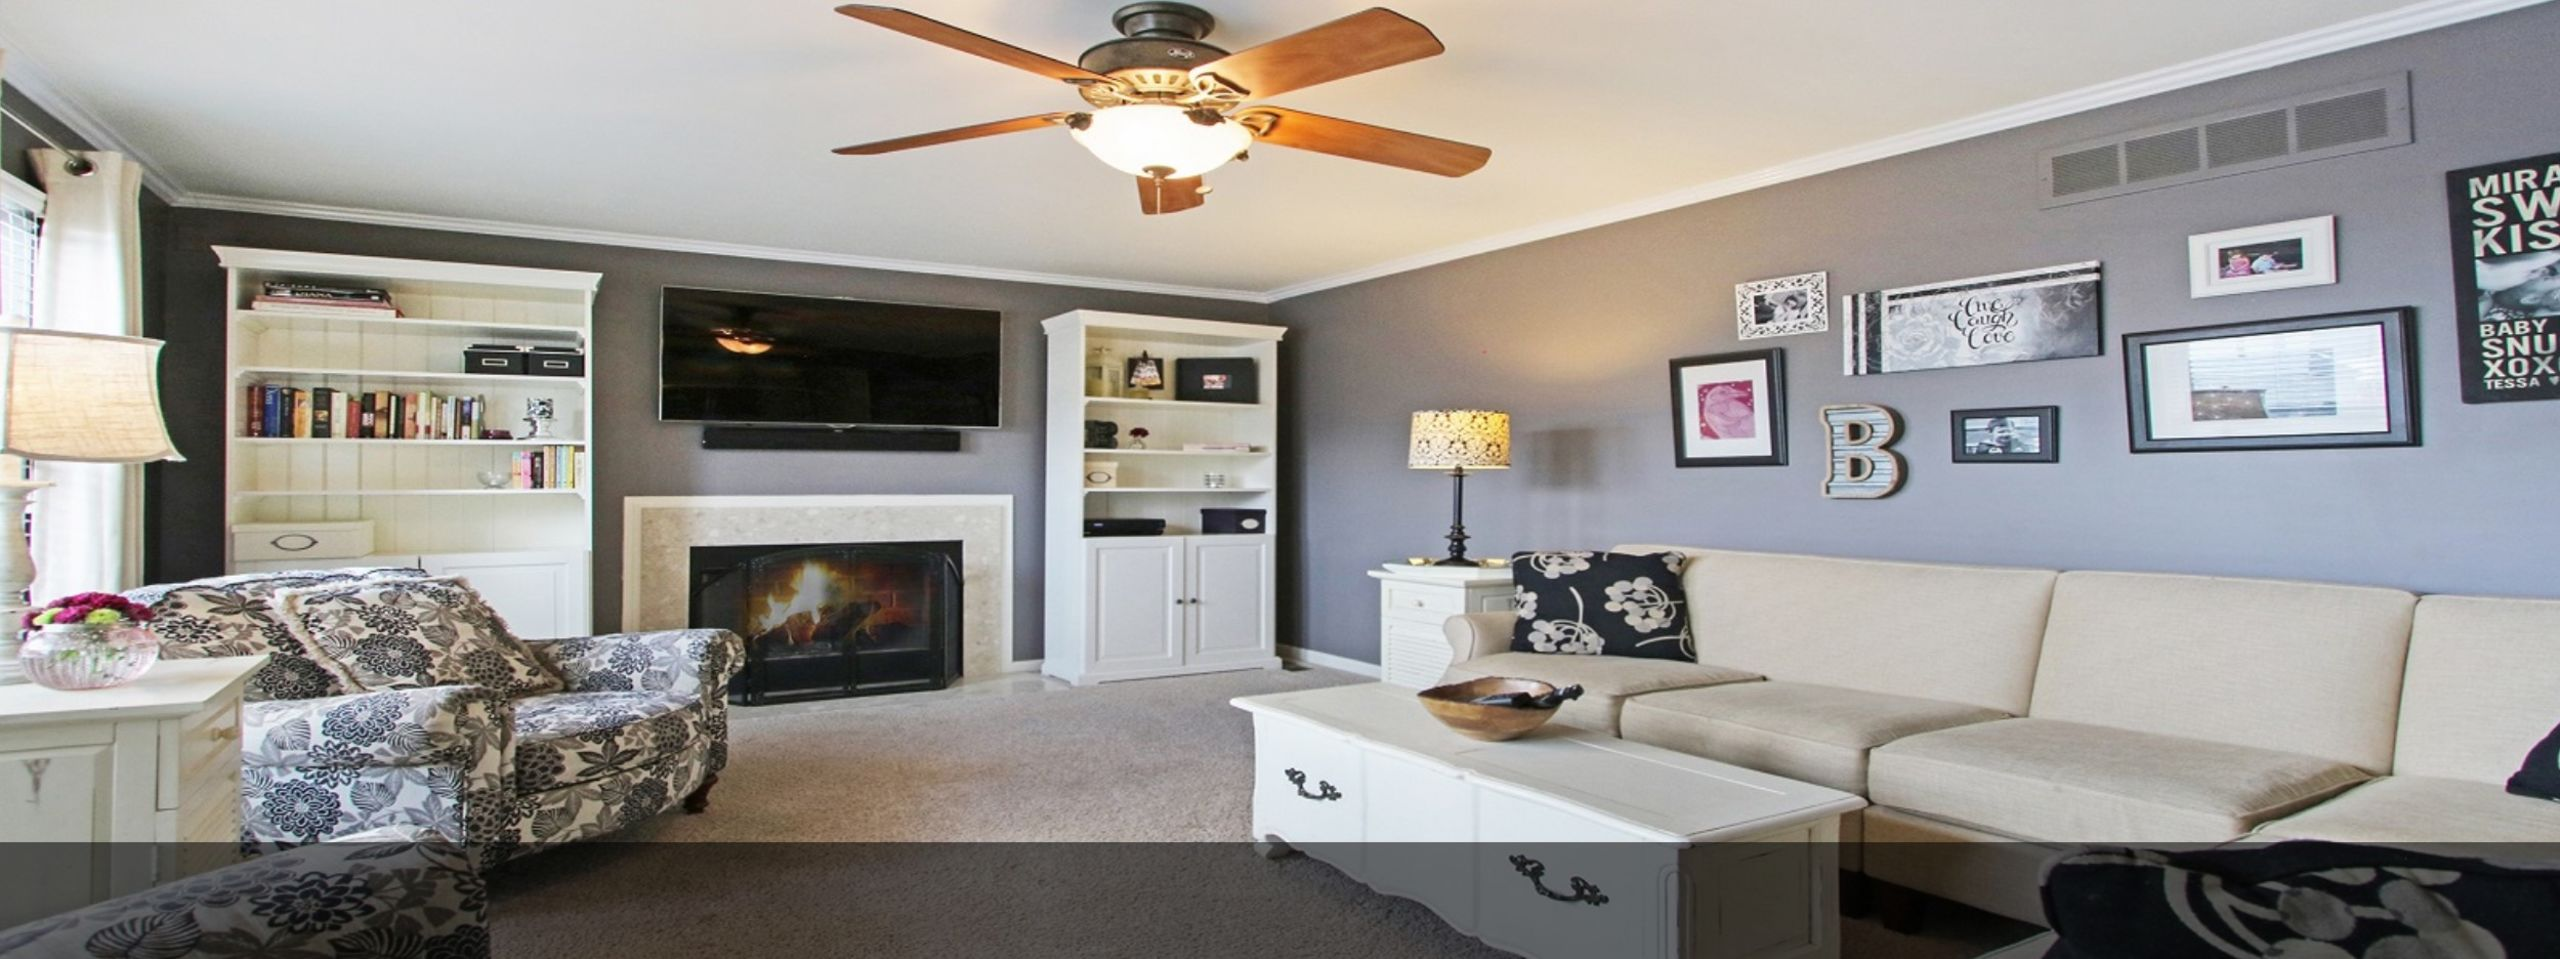 Cozy family room w.open site-line to kitchen, gas fireplace for the chilly autumn nights & plenty of room to gather.